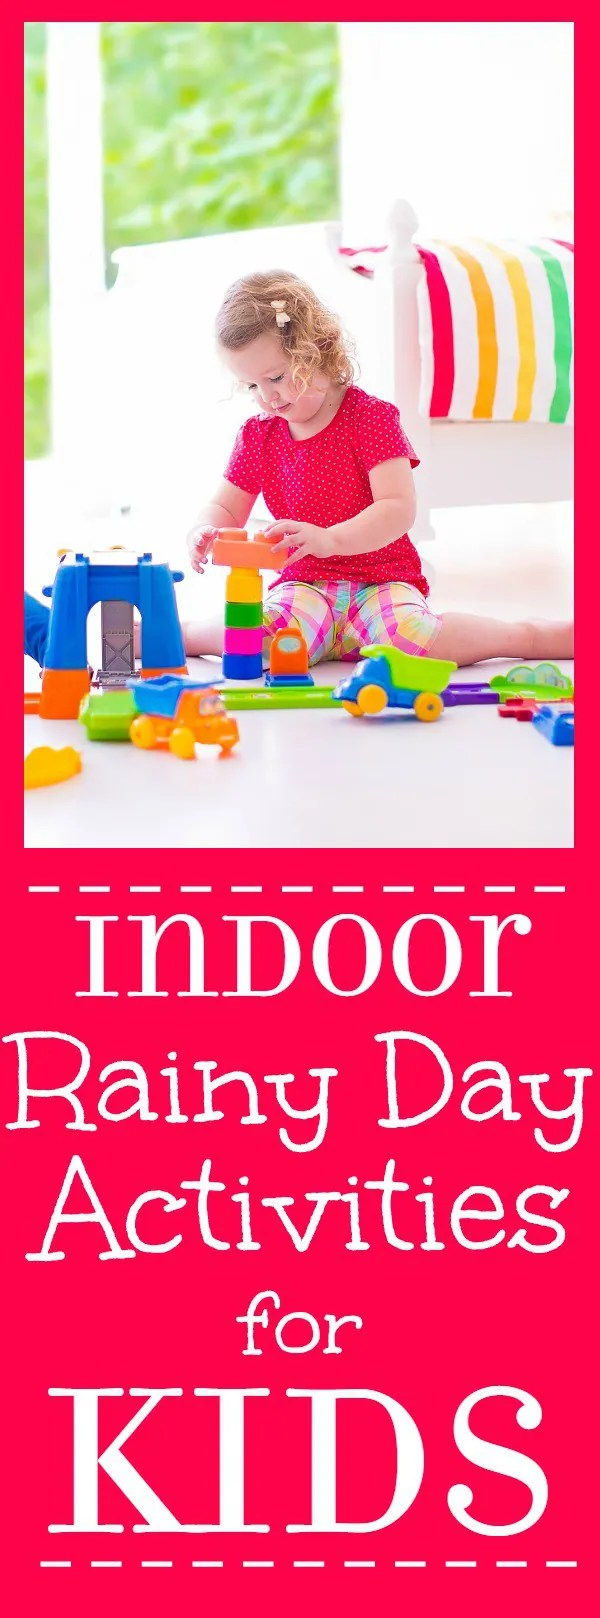 Indoor Rainy Day Activities For Kids The Gracious Wife